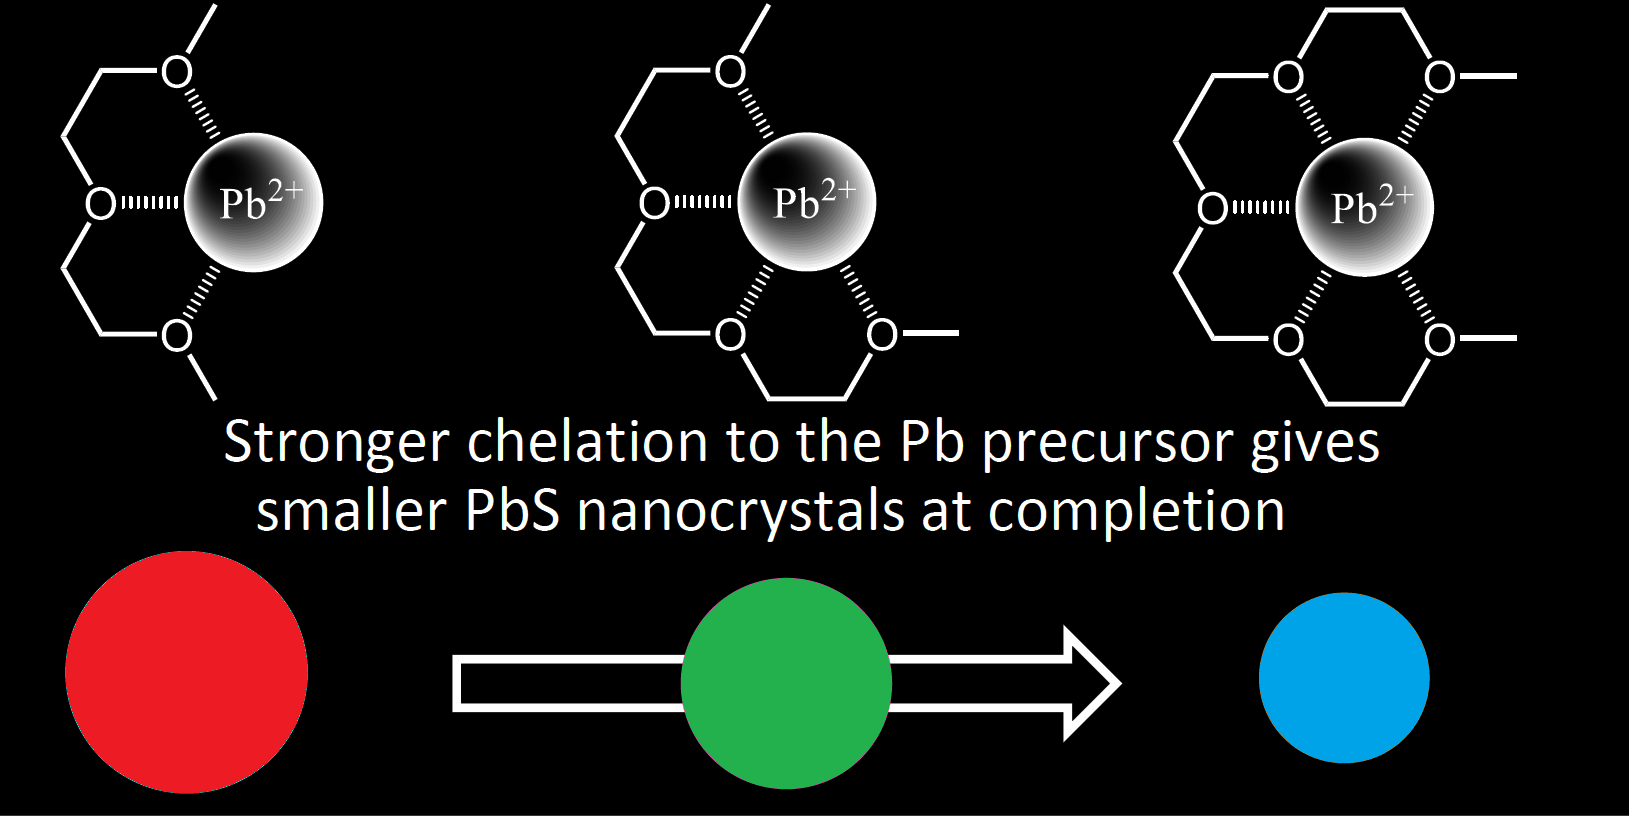 In the colloidal synthesis of PbS quantum dots, added glycol ethers variably suppress the formation of metastable cluster intermediates. This achieves control of nanocrystal size in reactions run to completion.